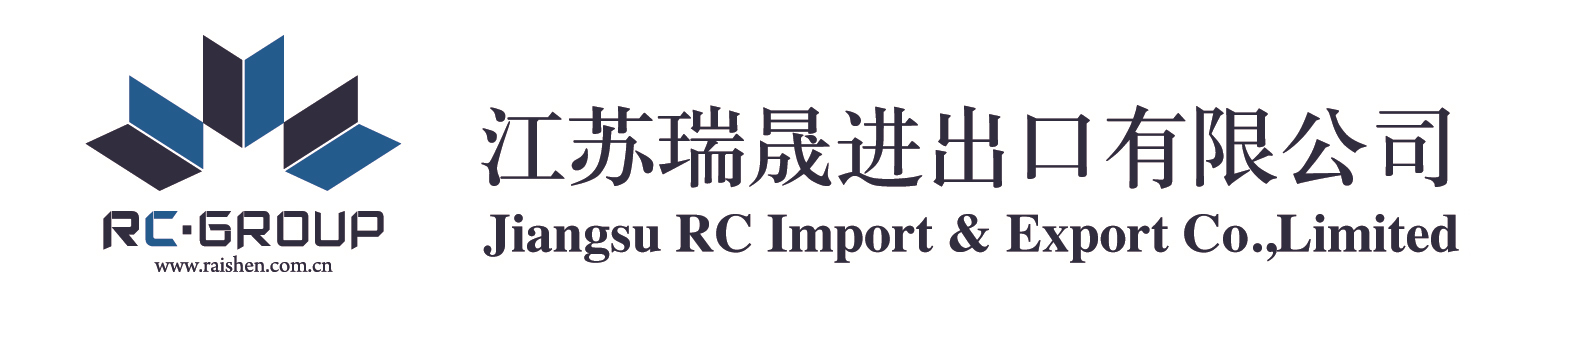 JIANGSU RC IMPORT&EXPORT CO., LIMITED